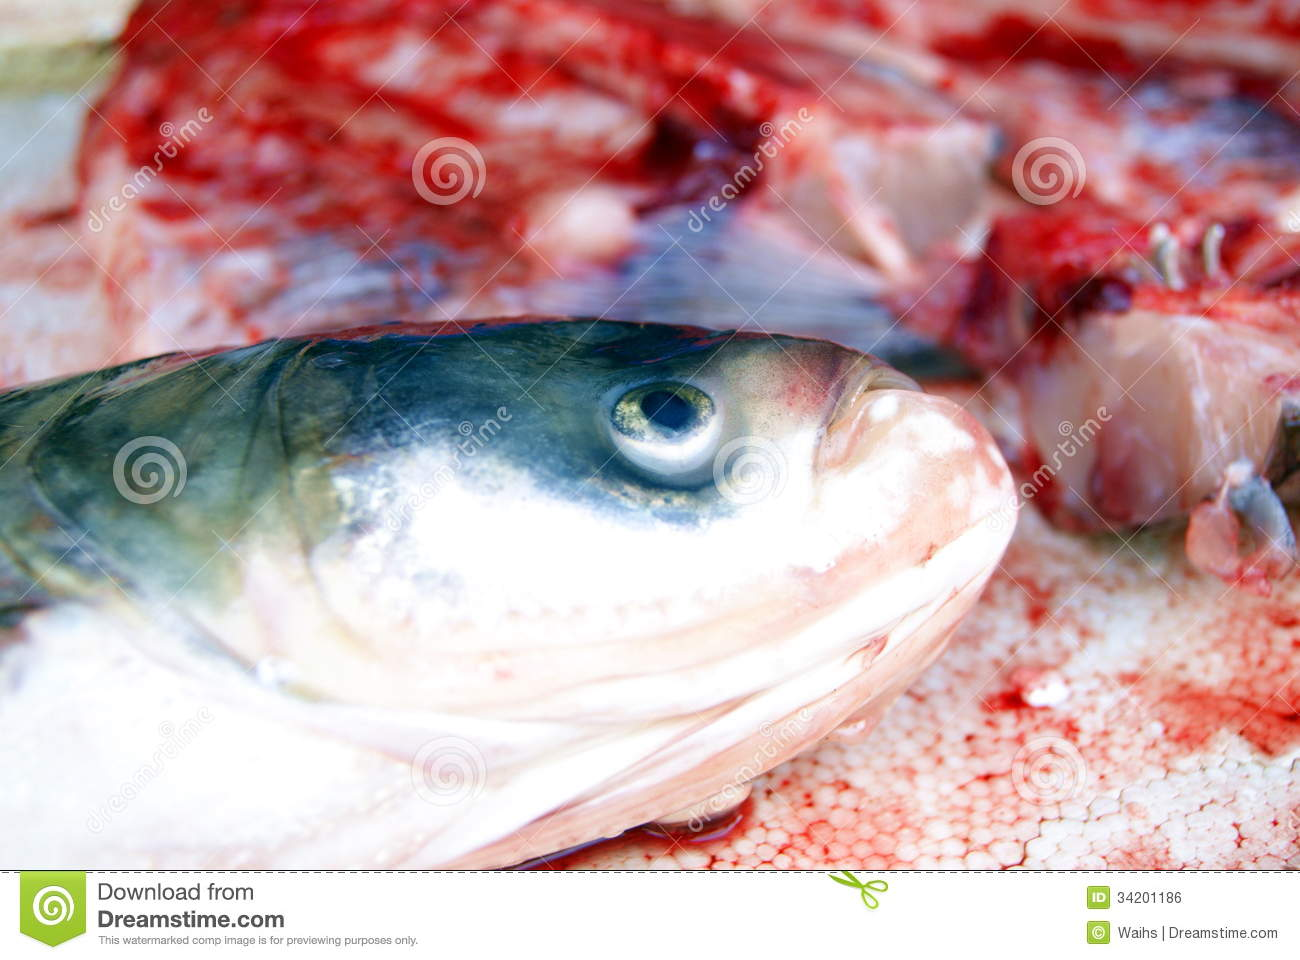 Fish heads and fish meat royalty free stock image image for Is fish considered meat